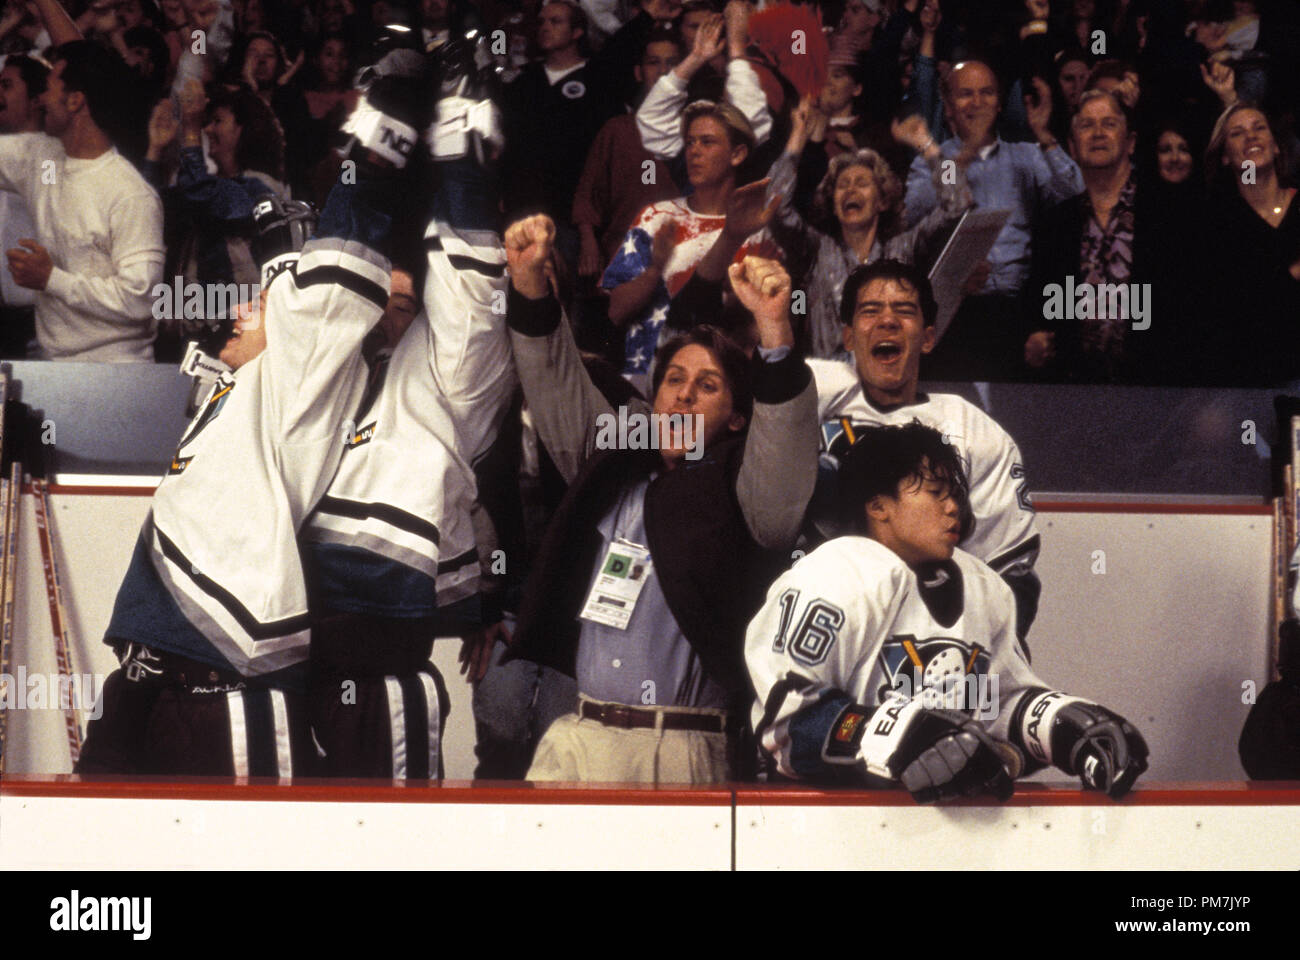 Film Still from 'D2: The Mighty Ducks' Emilio Estevez, Vincent Larusso, Marguerite Moreau, Aaron Lohr, Justin Wong  © 1994 Walt Disney Pictures Photo Credit: Meila Penn   File Reference # 31129373THA  For Editorial Use Only - All Rights Reserved - Stock Image